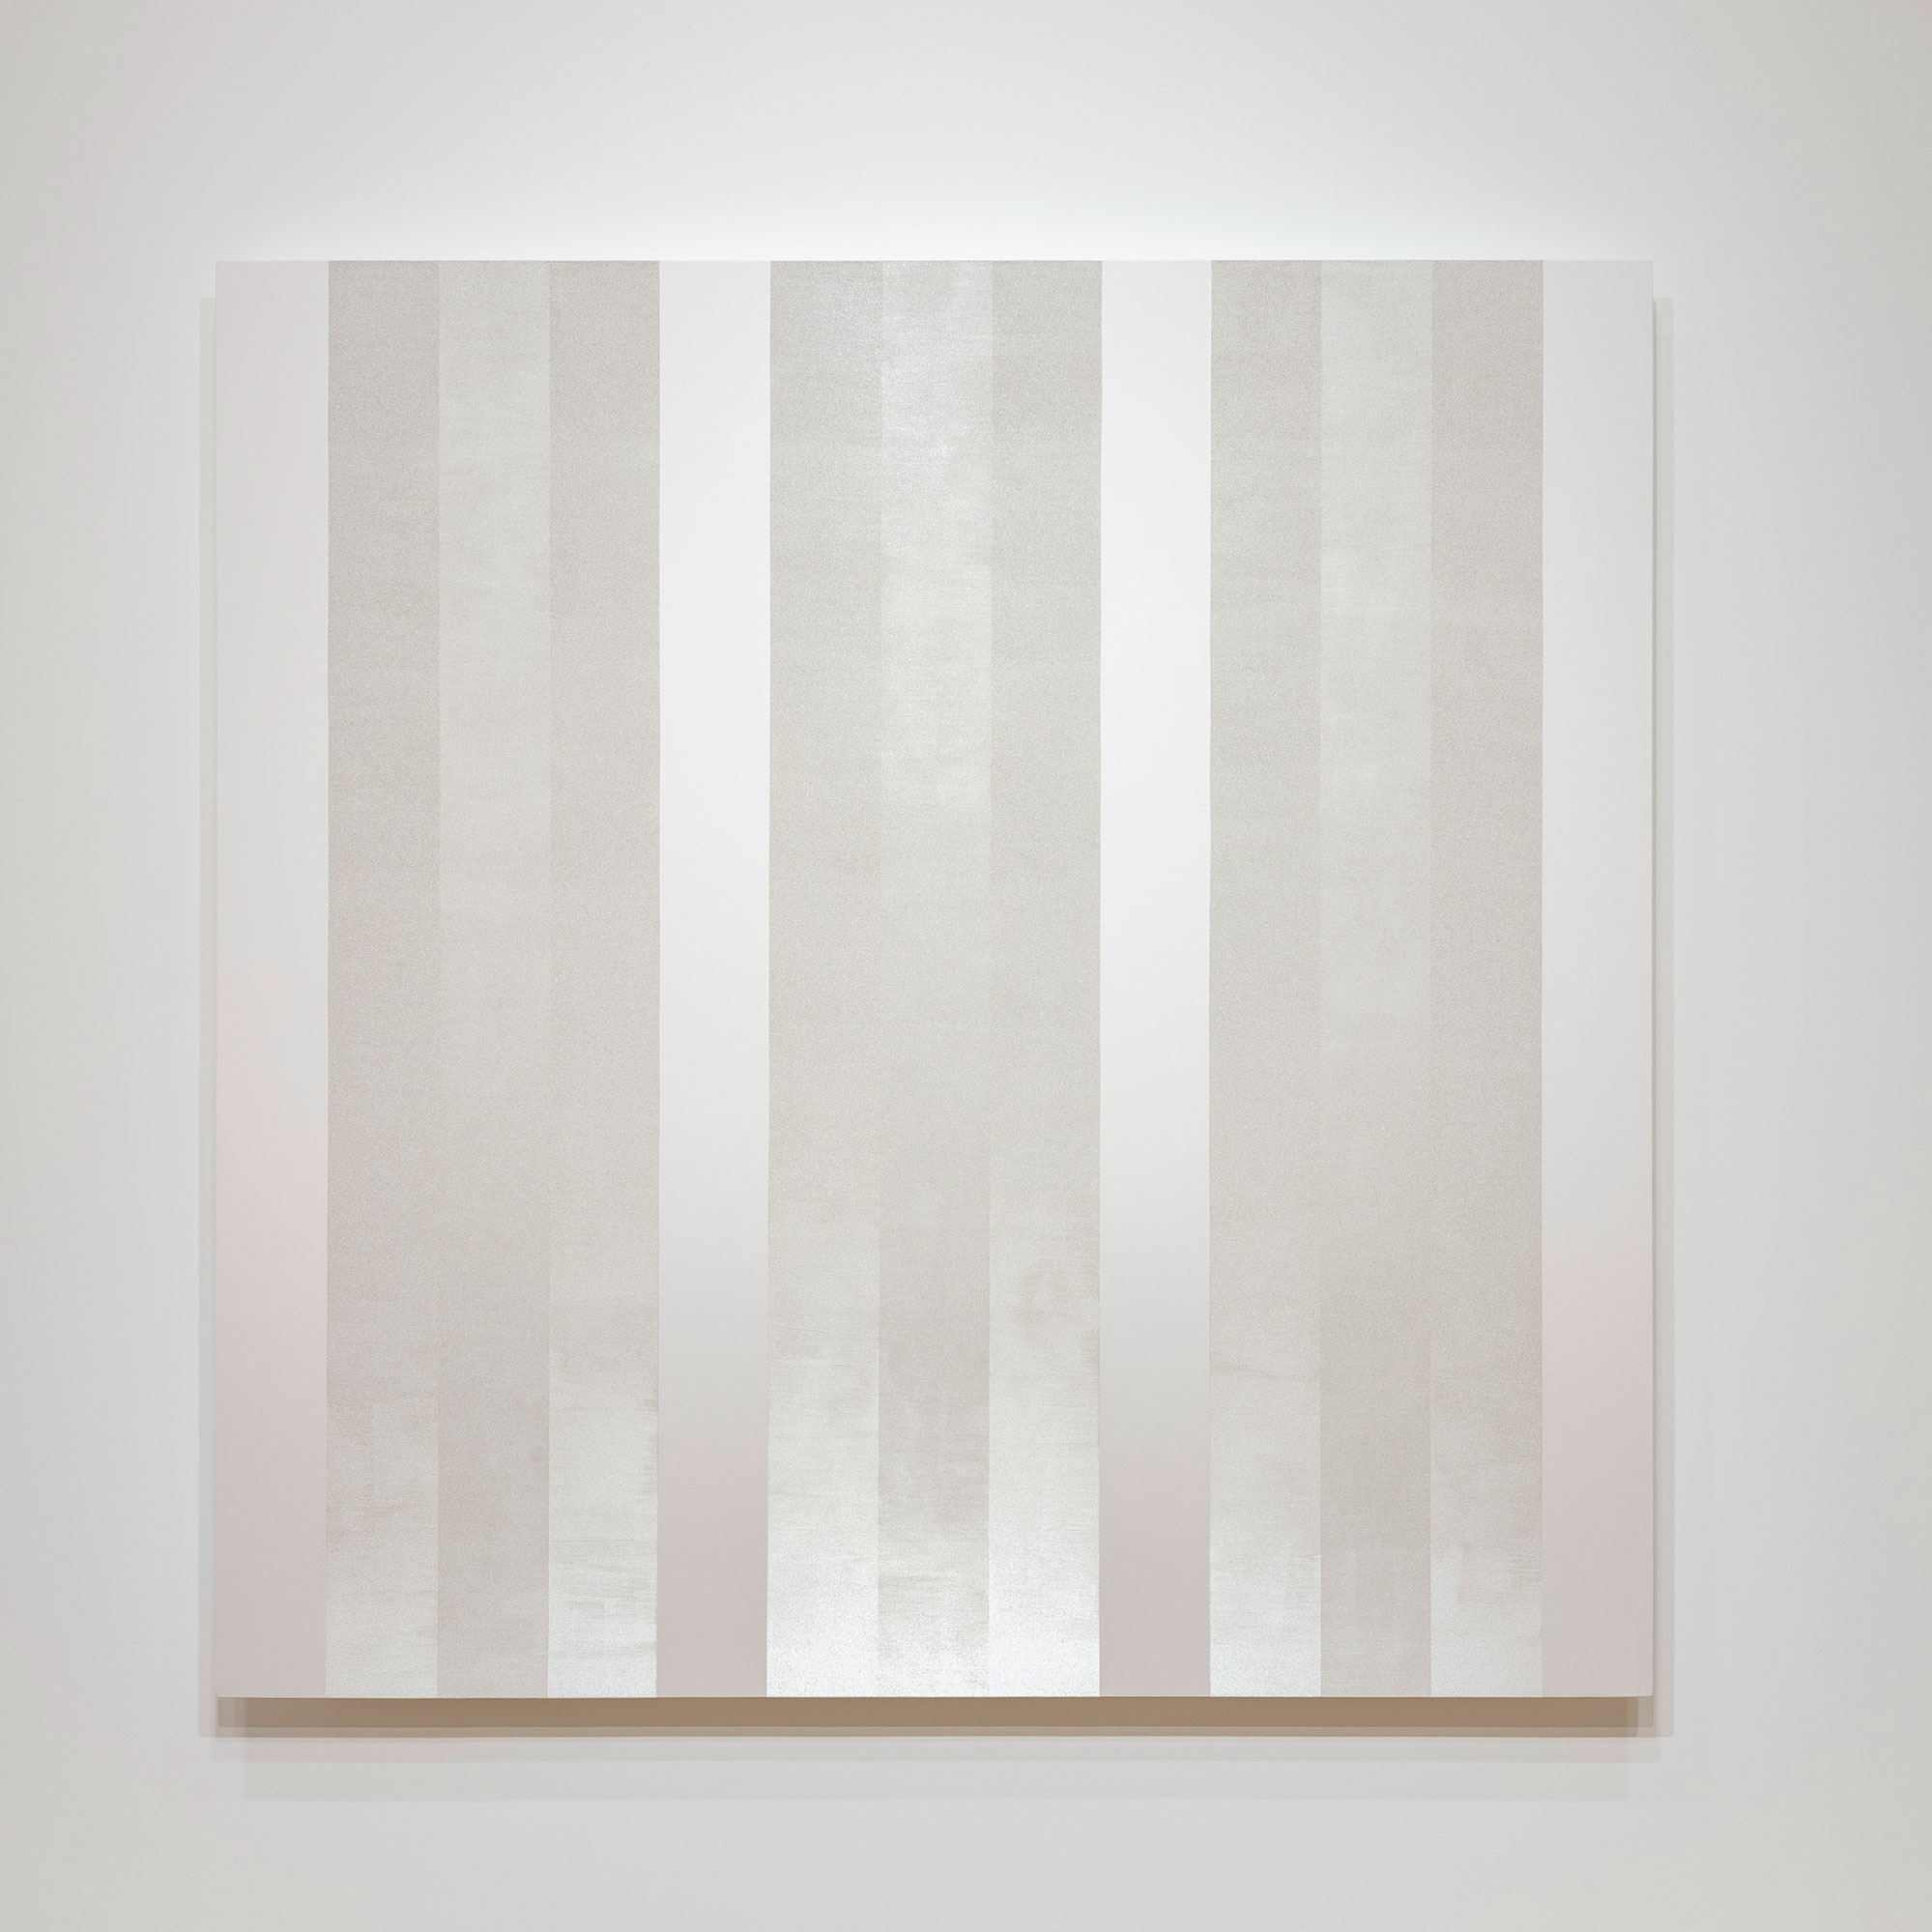 Mary Corse Untitled (White Multiband, Beveled) 2019 © Mary Corse, Courtesy Pace Gallery